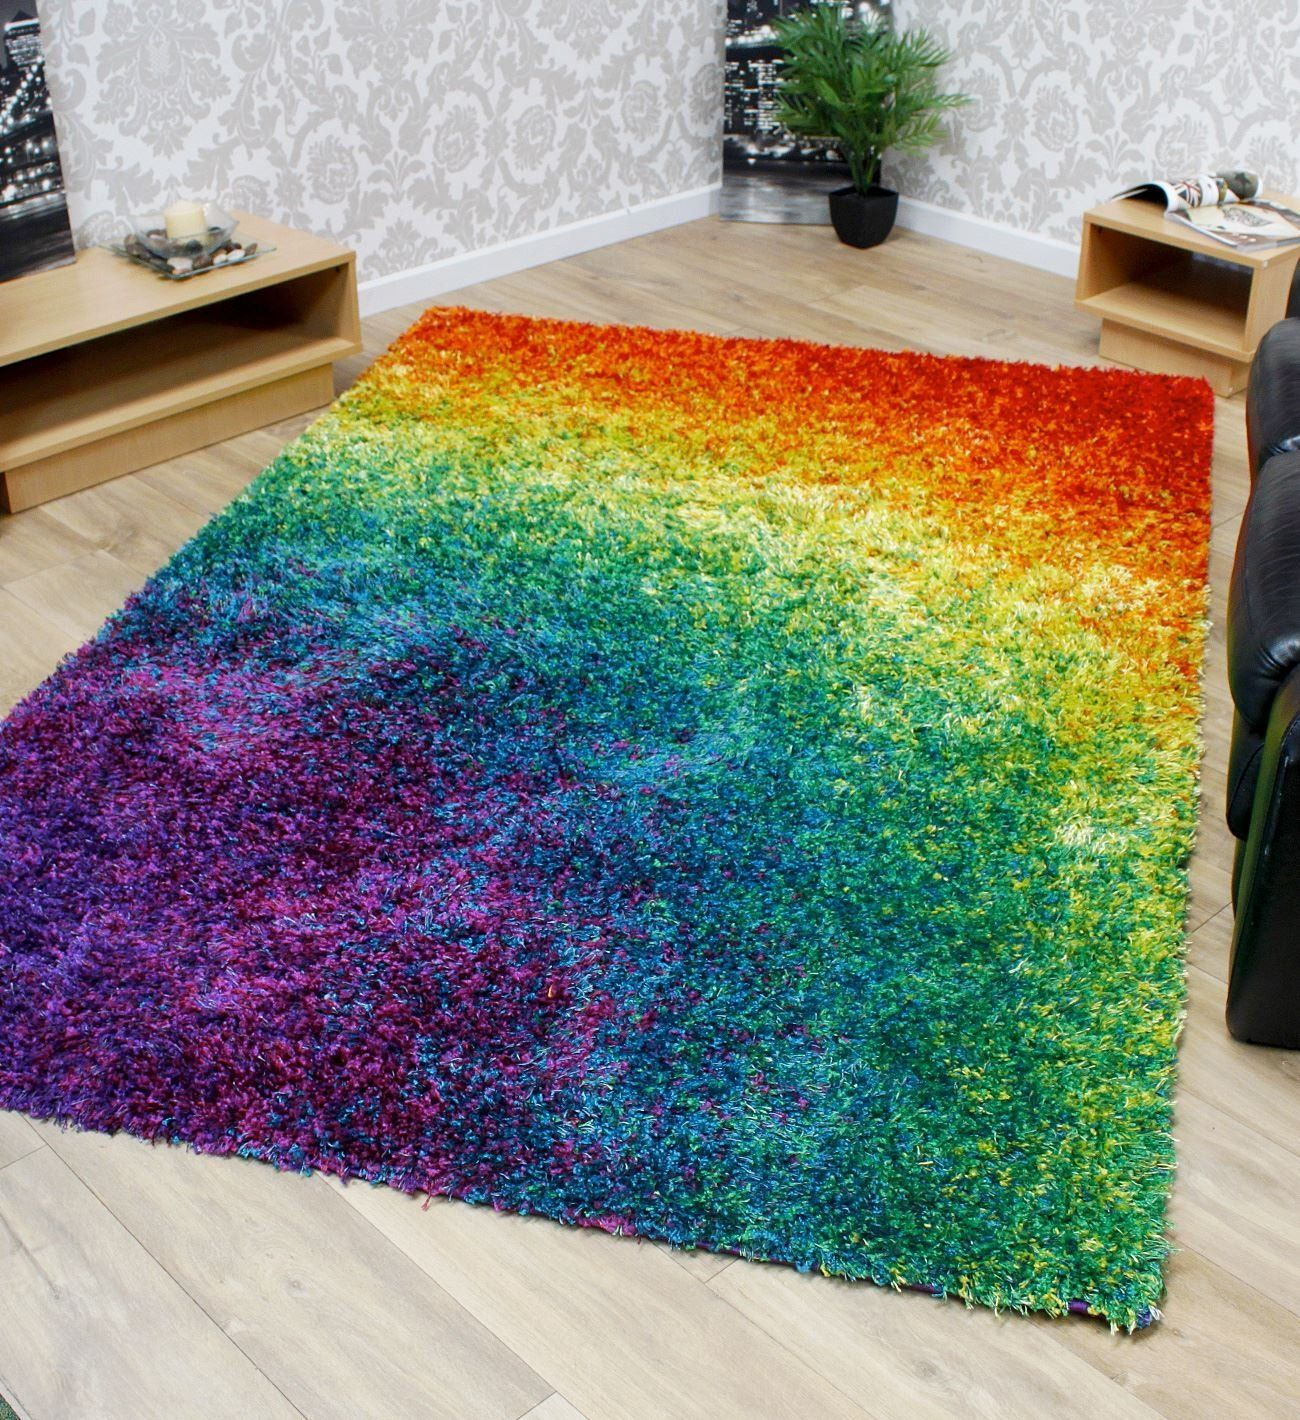 colorful area rugs crafty inspiration ideas rainbow area rug marvelous rugs 12630